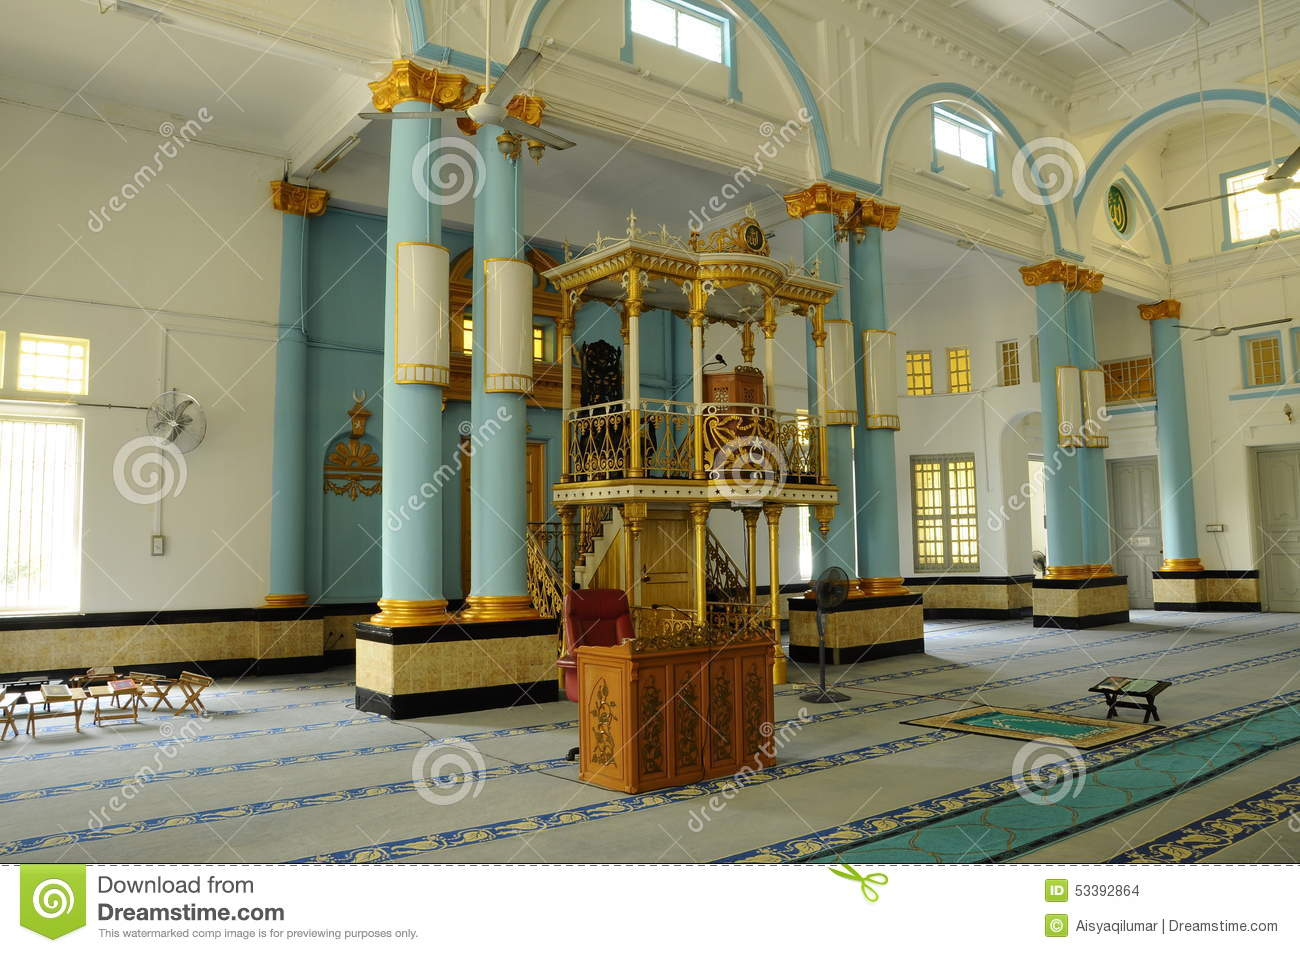 Interior Of The Sultan Ibrahim Jamek Mosque At Muar Johor